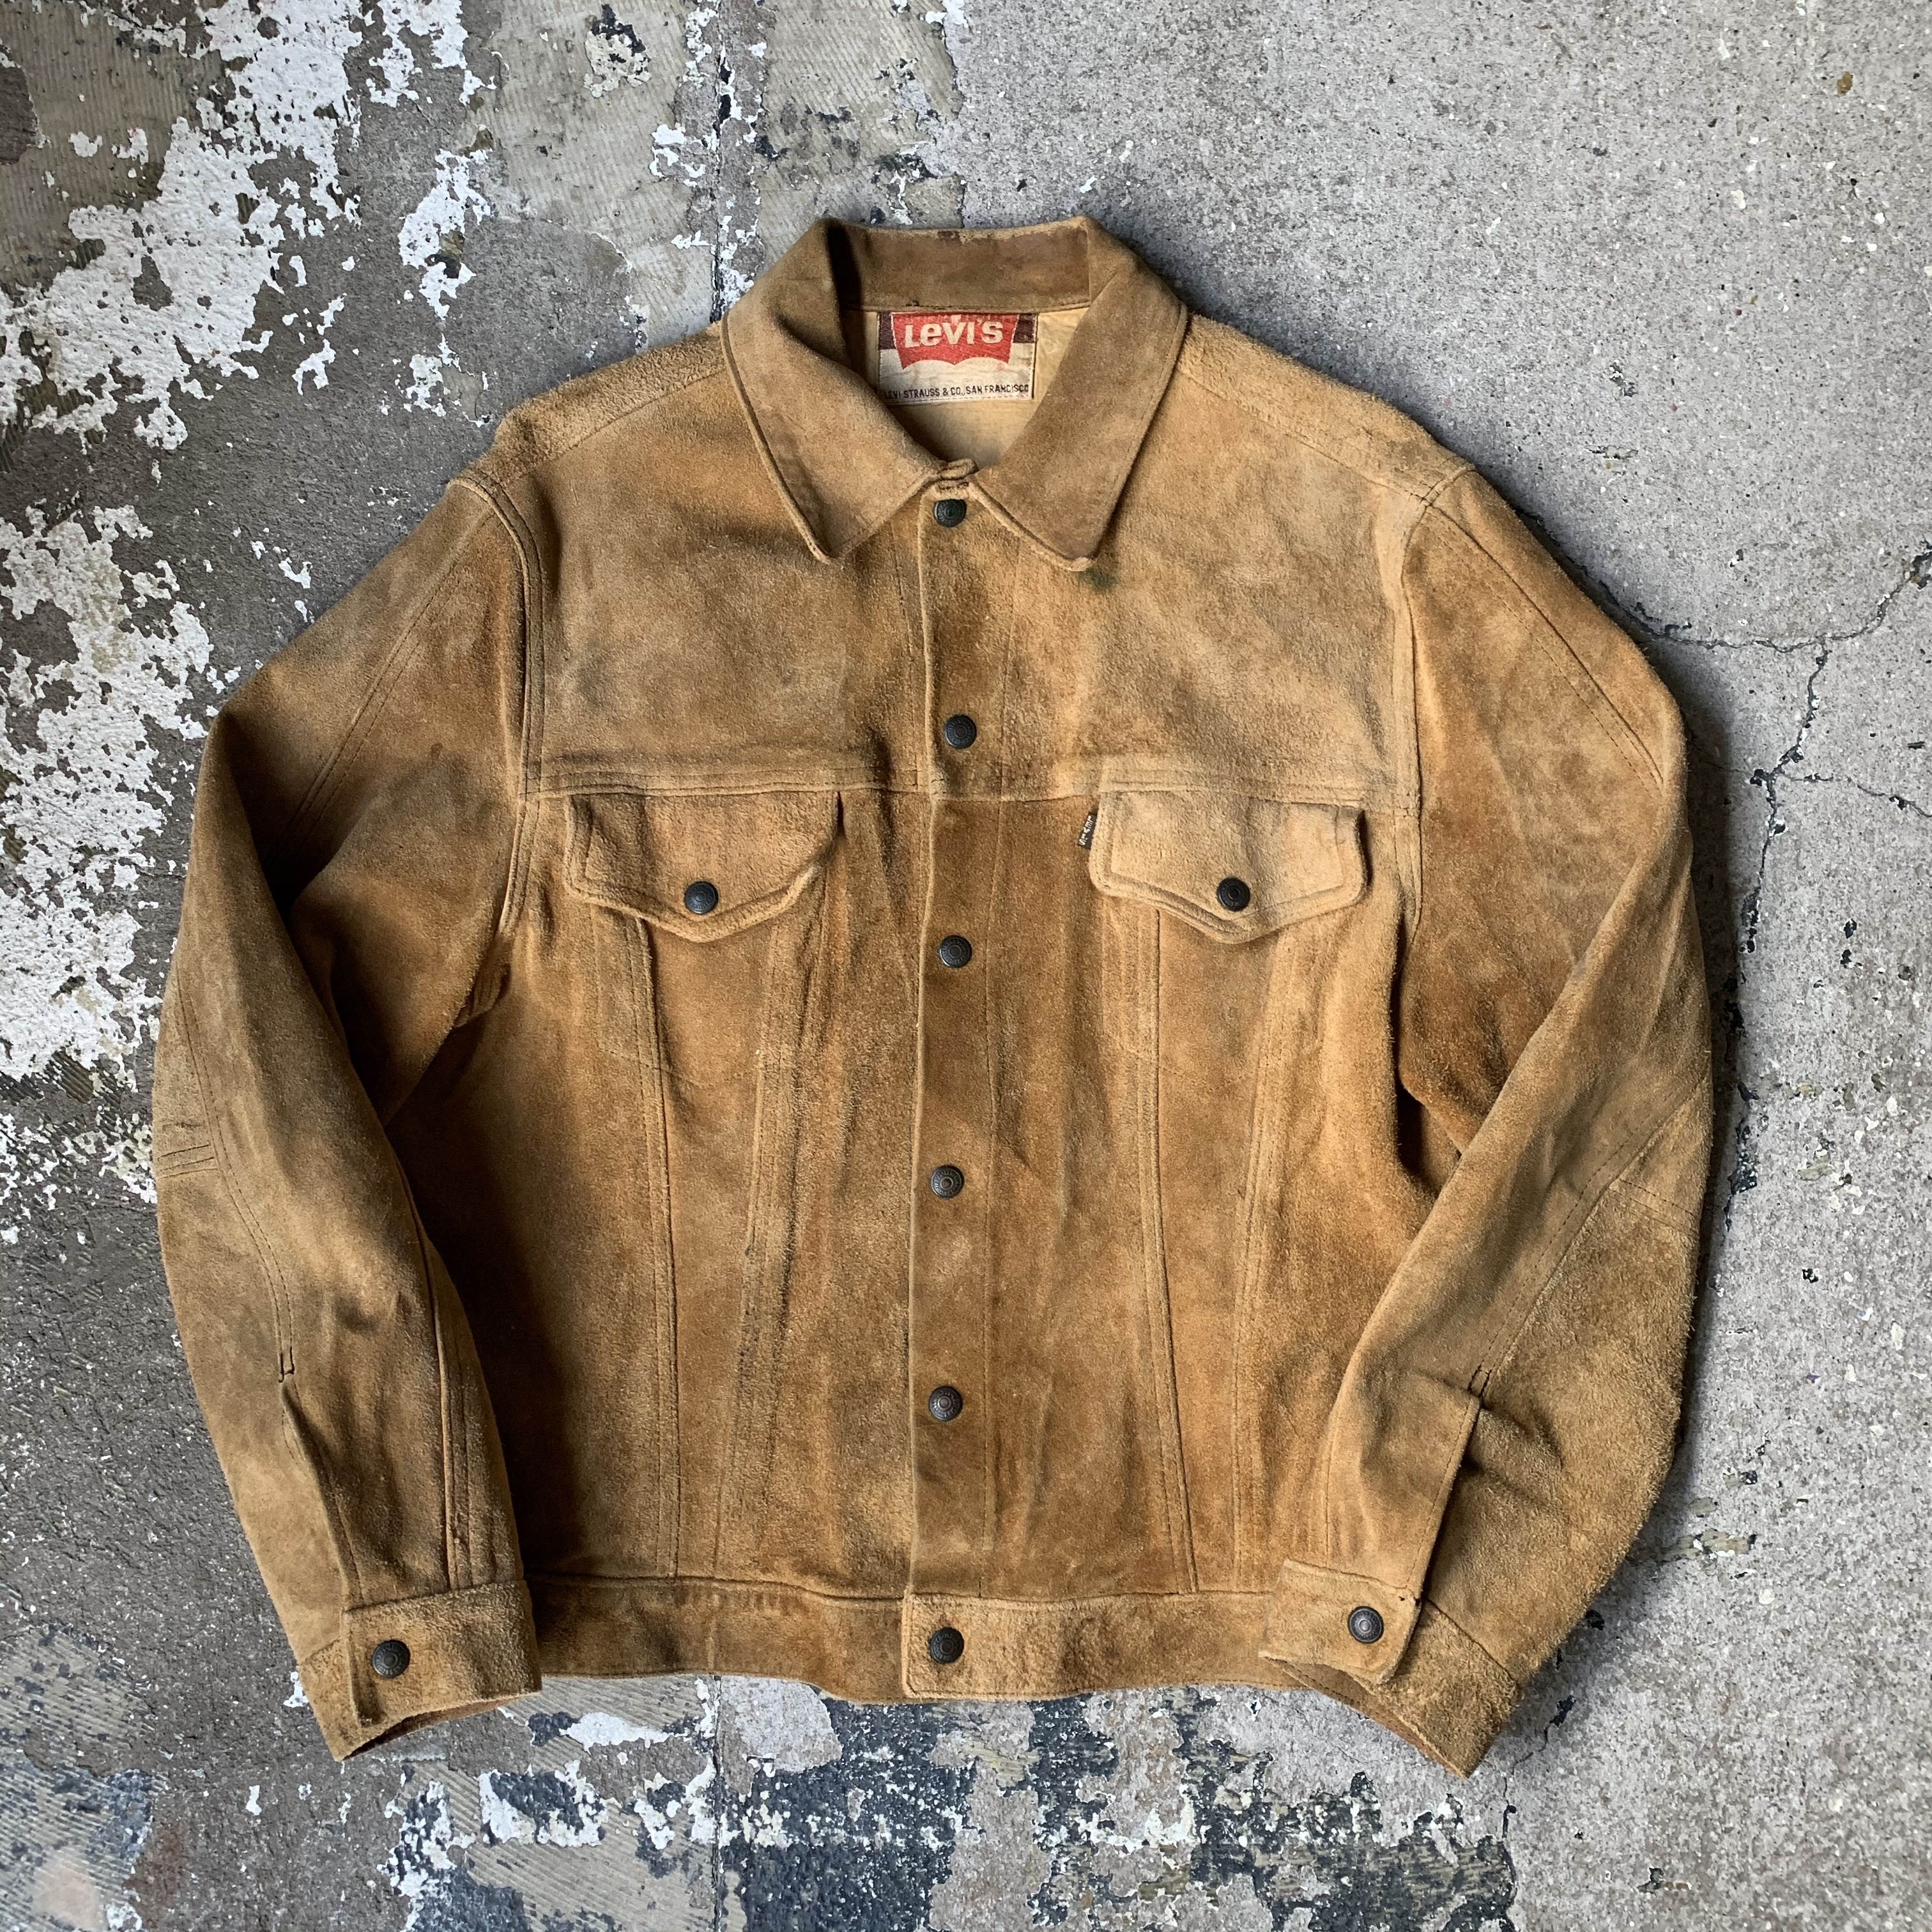 60's Levi's suede leather jacket 3rd type